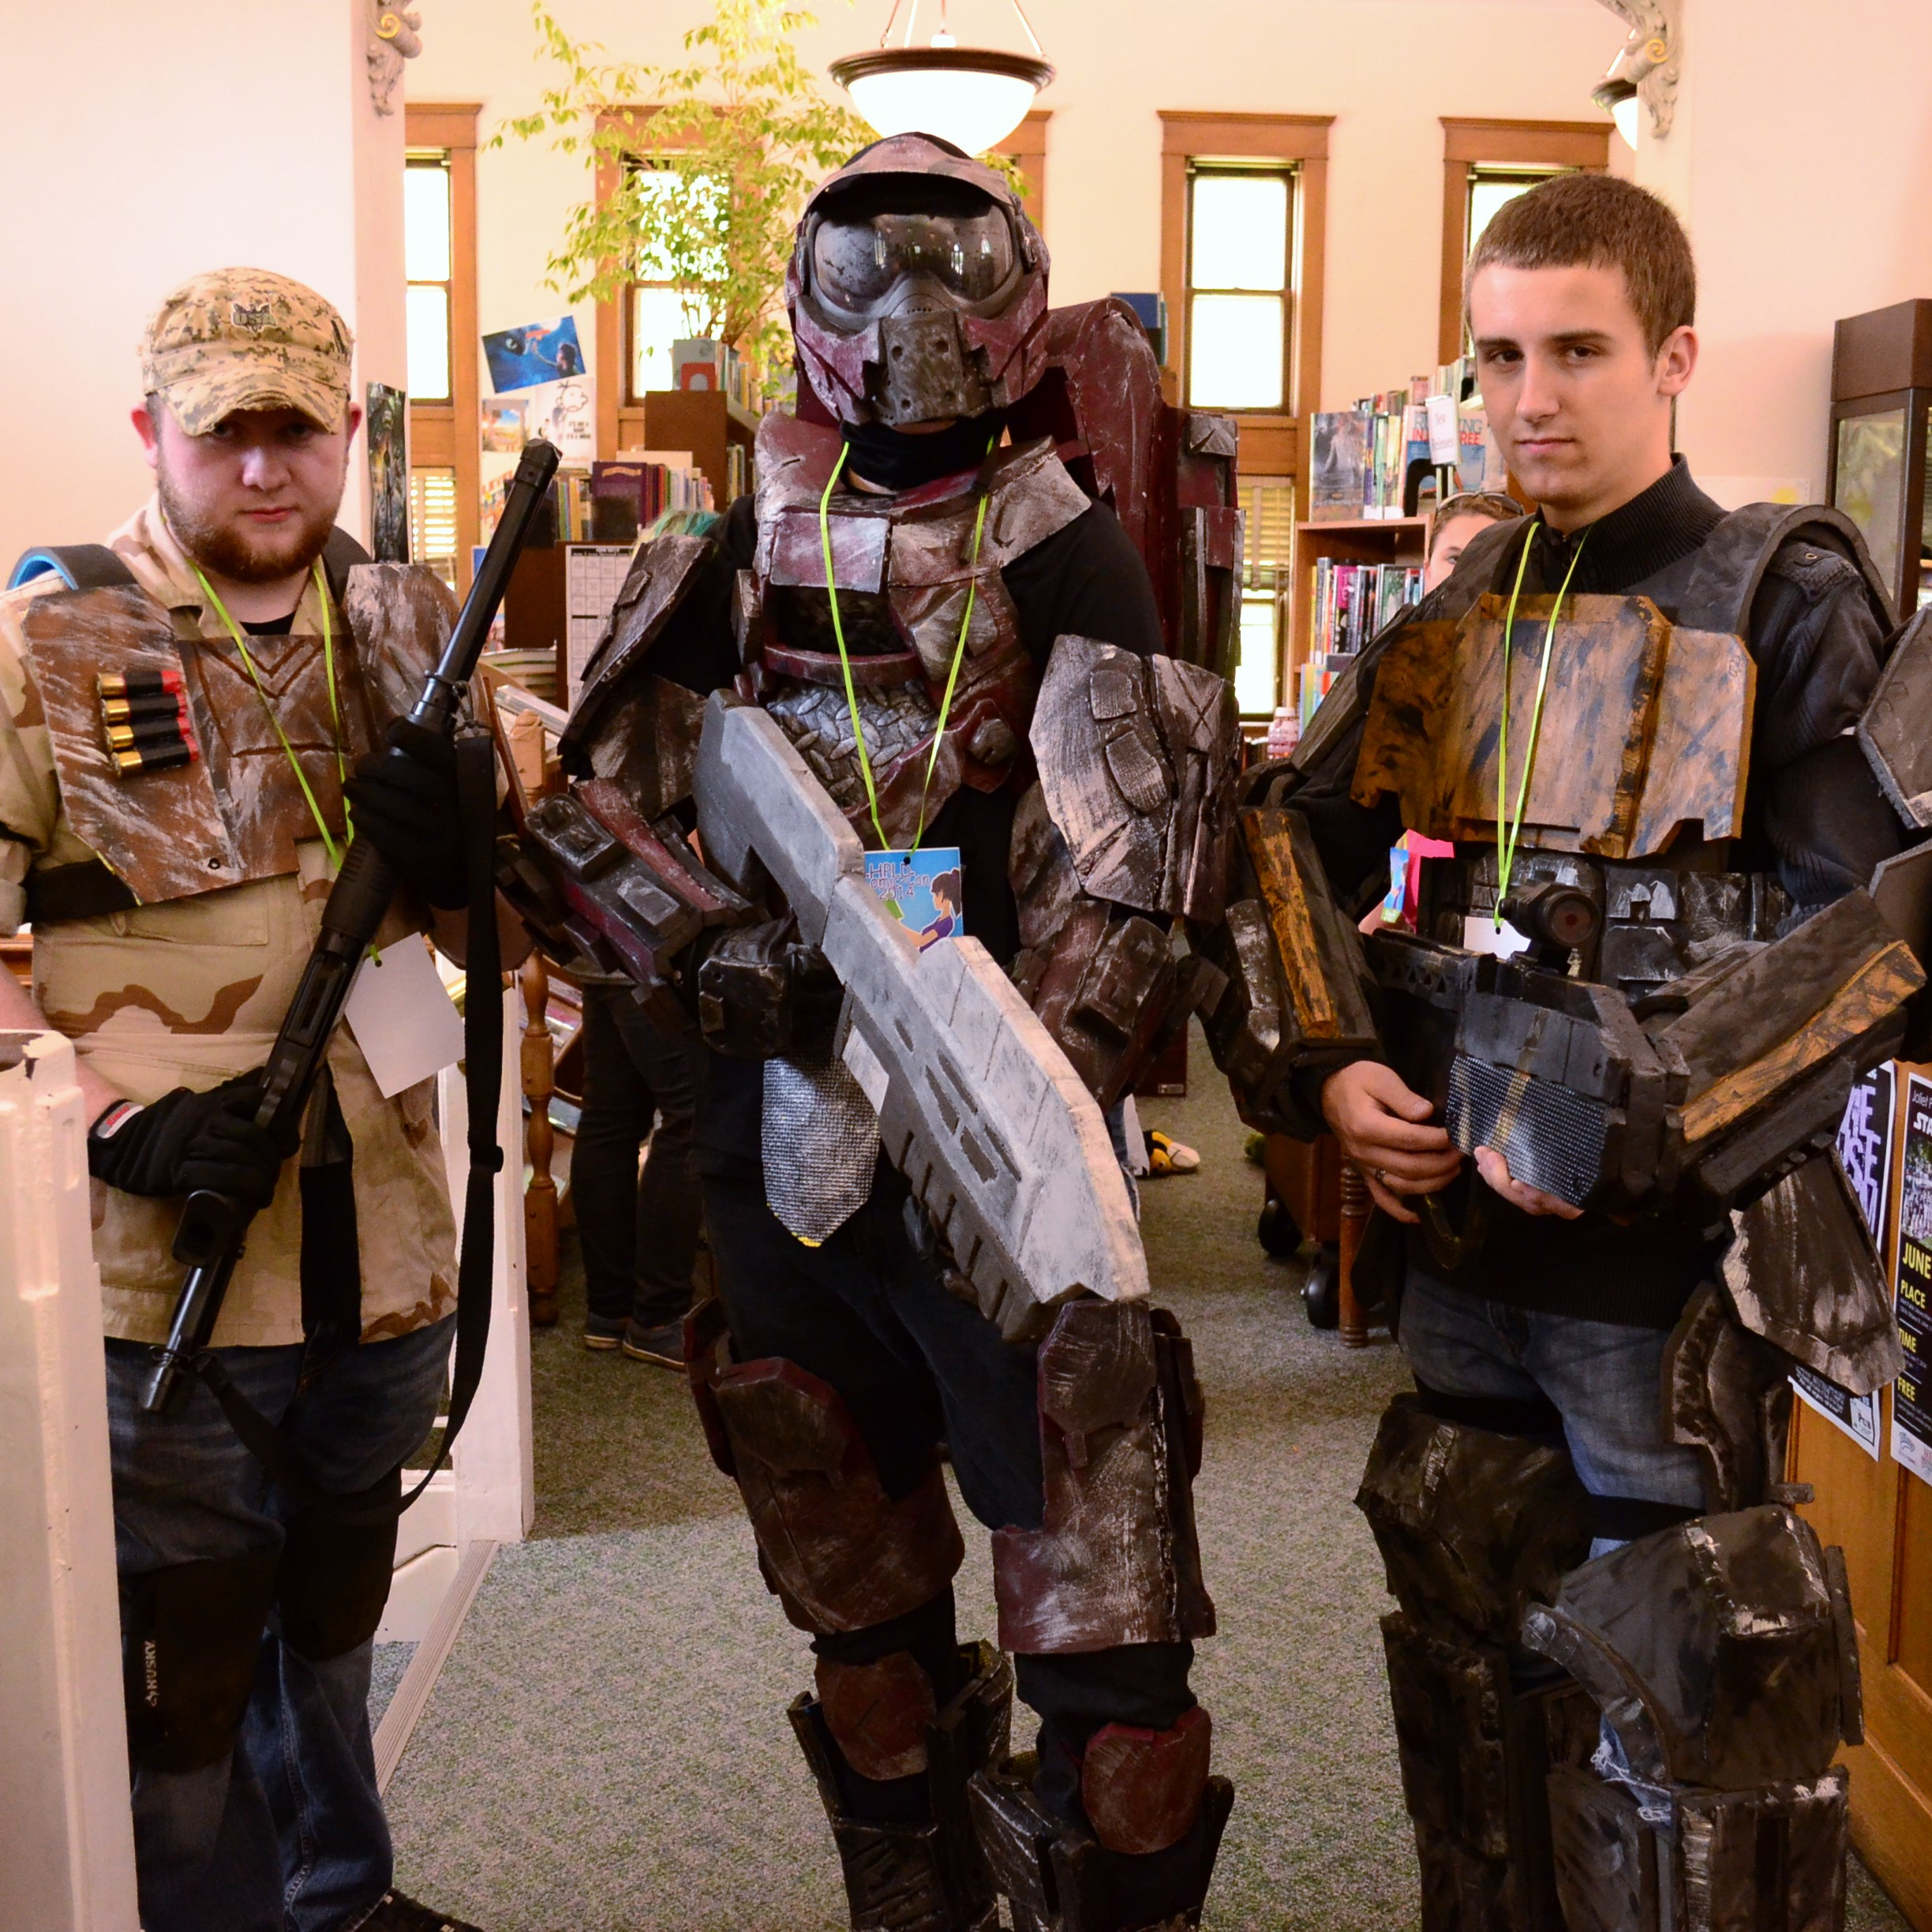 Cosplaying characters from Halo.